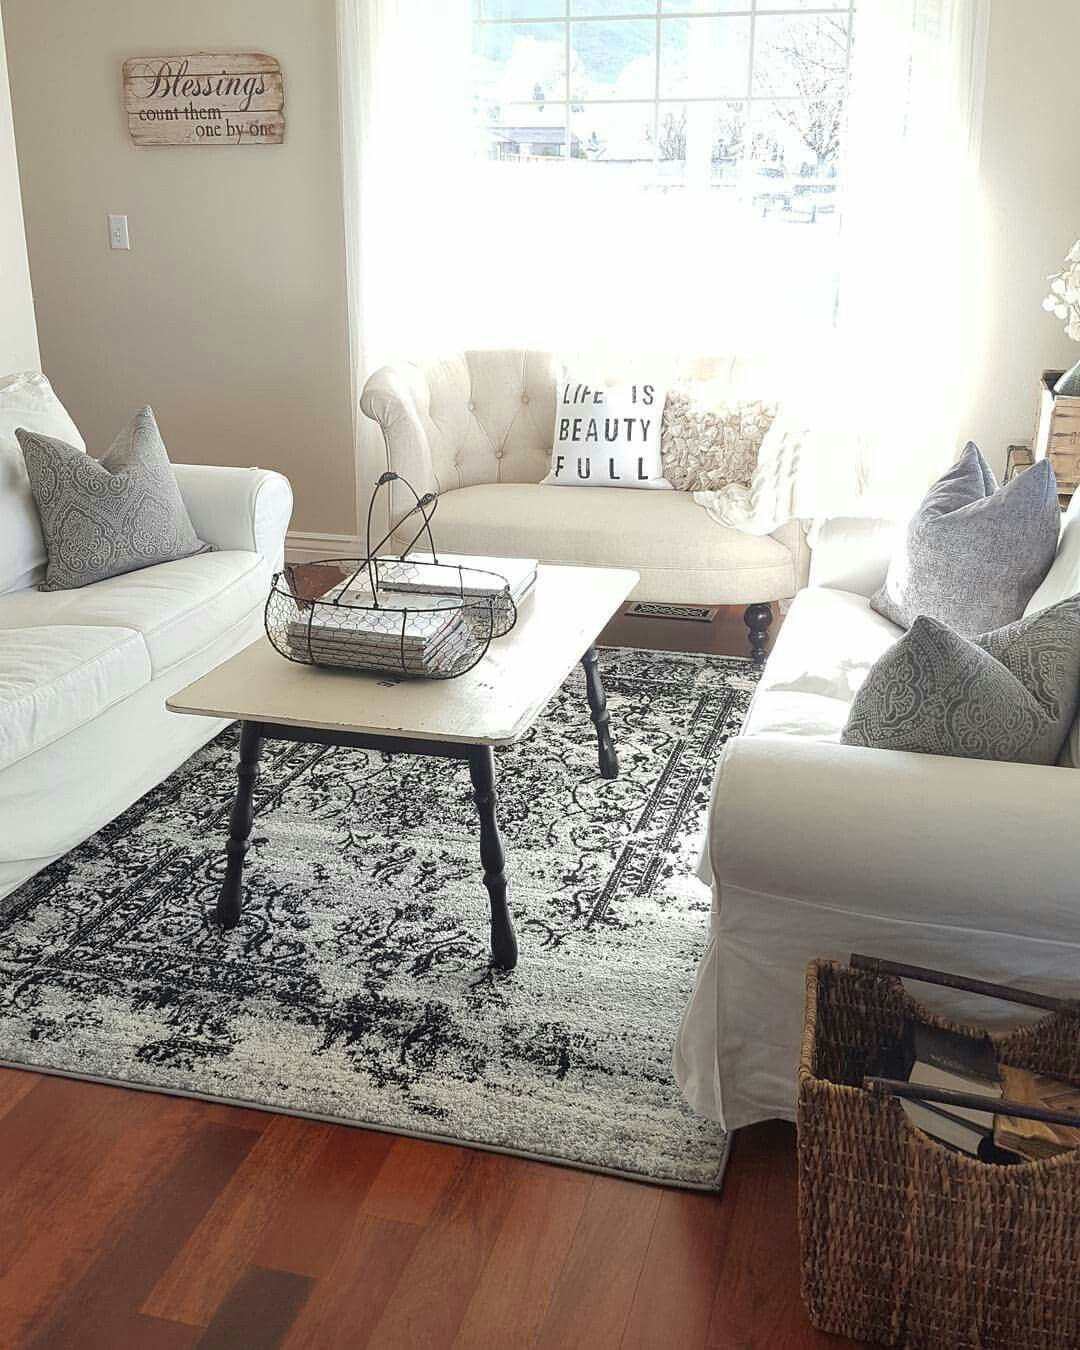 Neutral Decor, Slipcovered Sofas, throw pillows